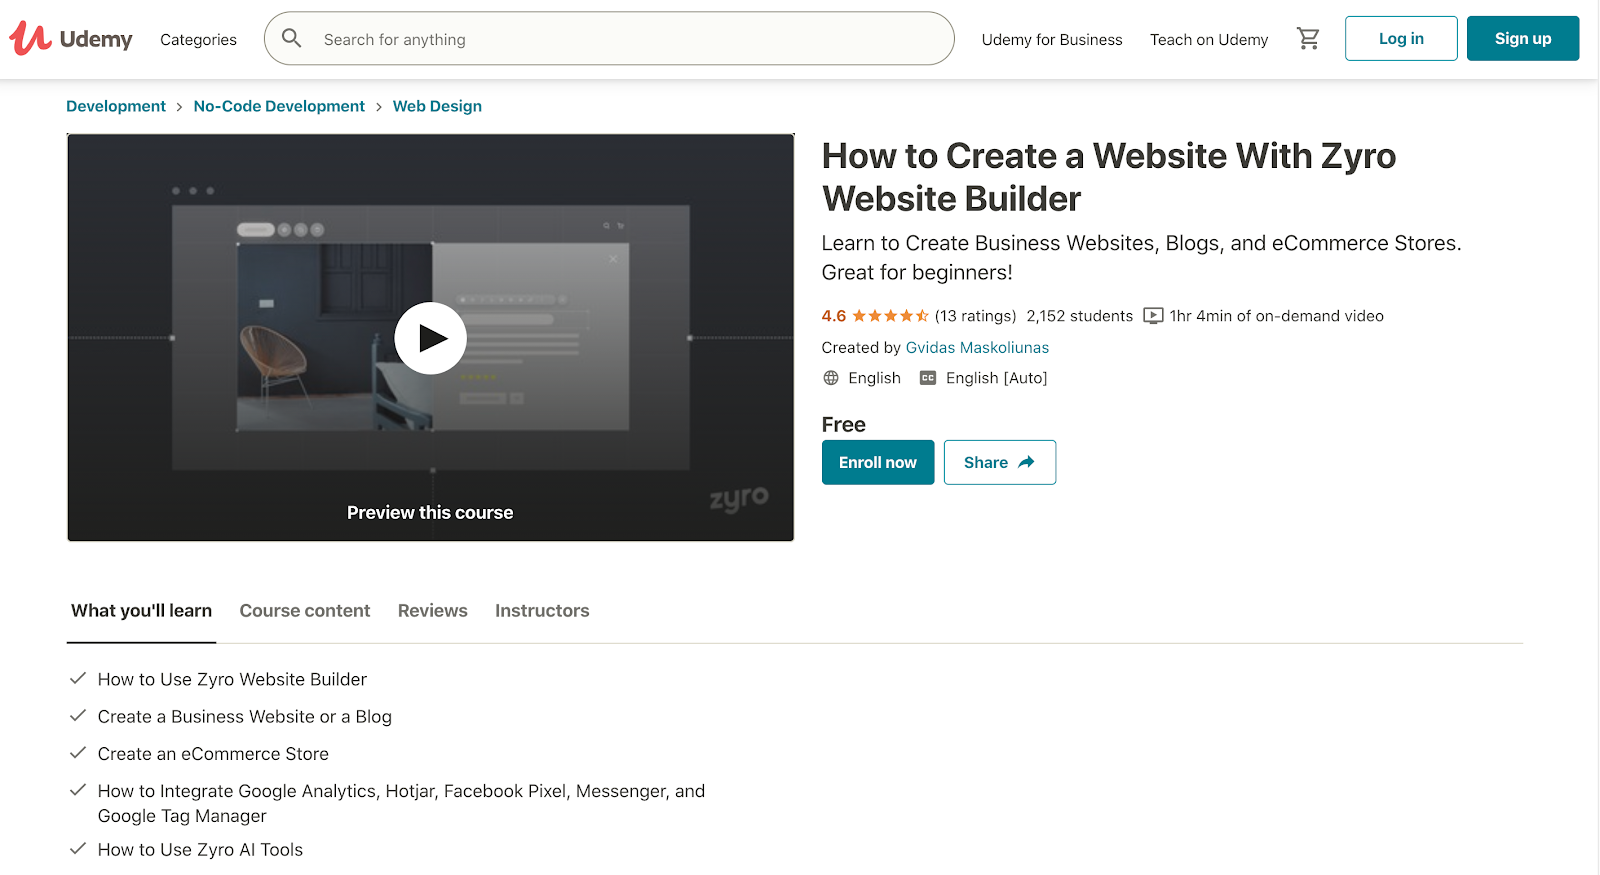 Udemy's web design class with Zyro